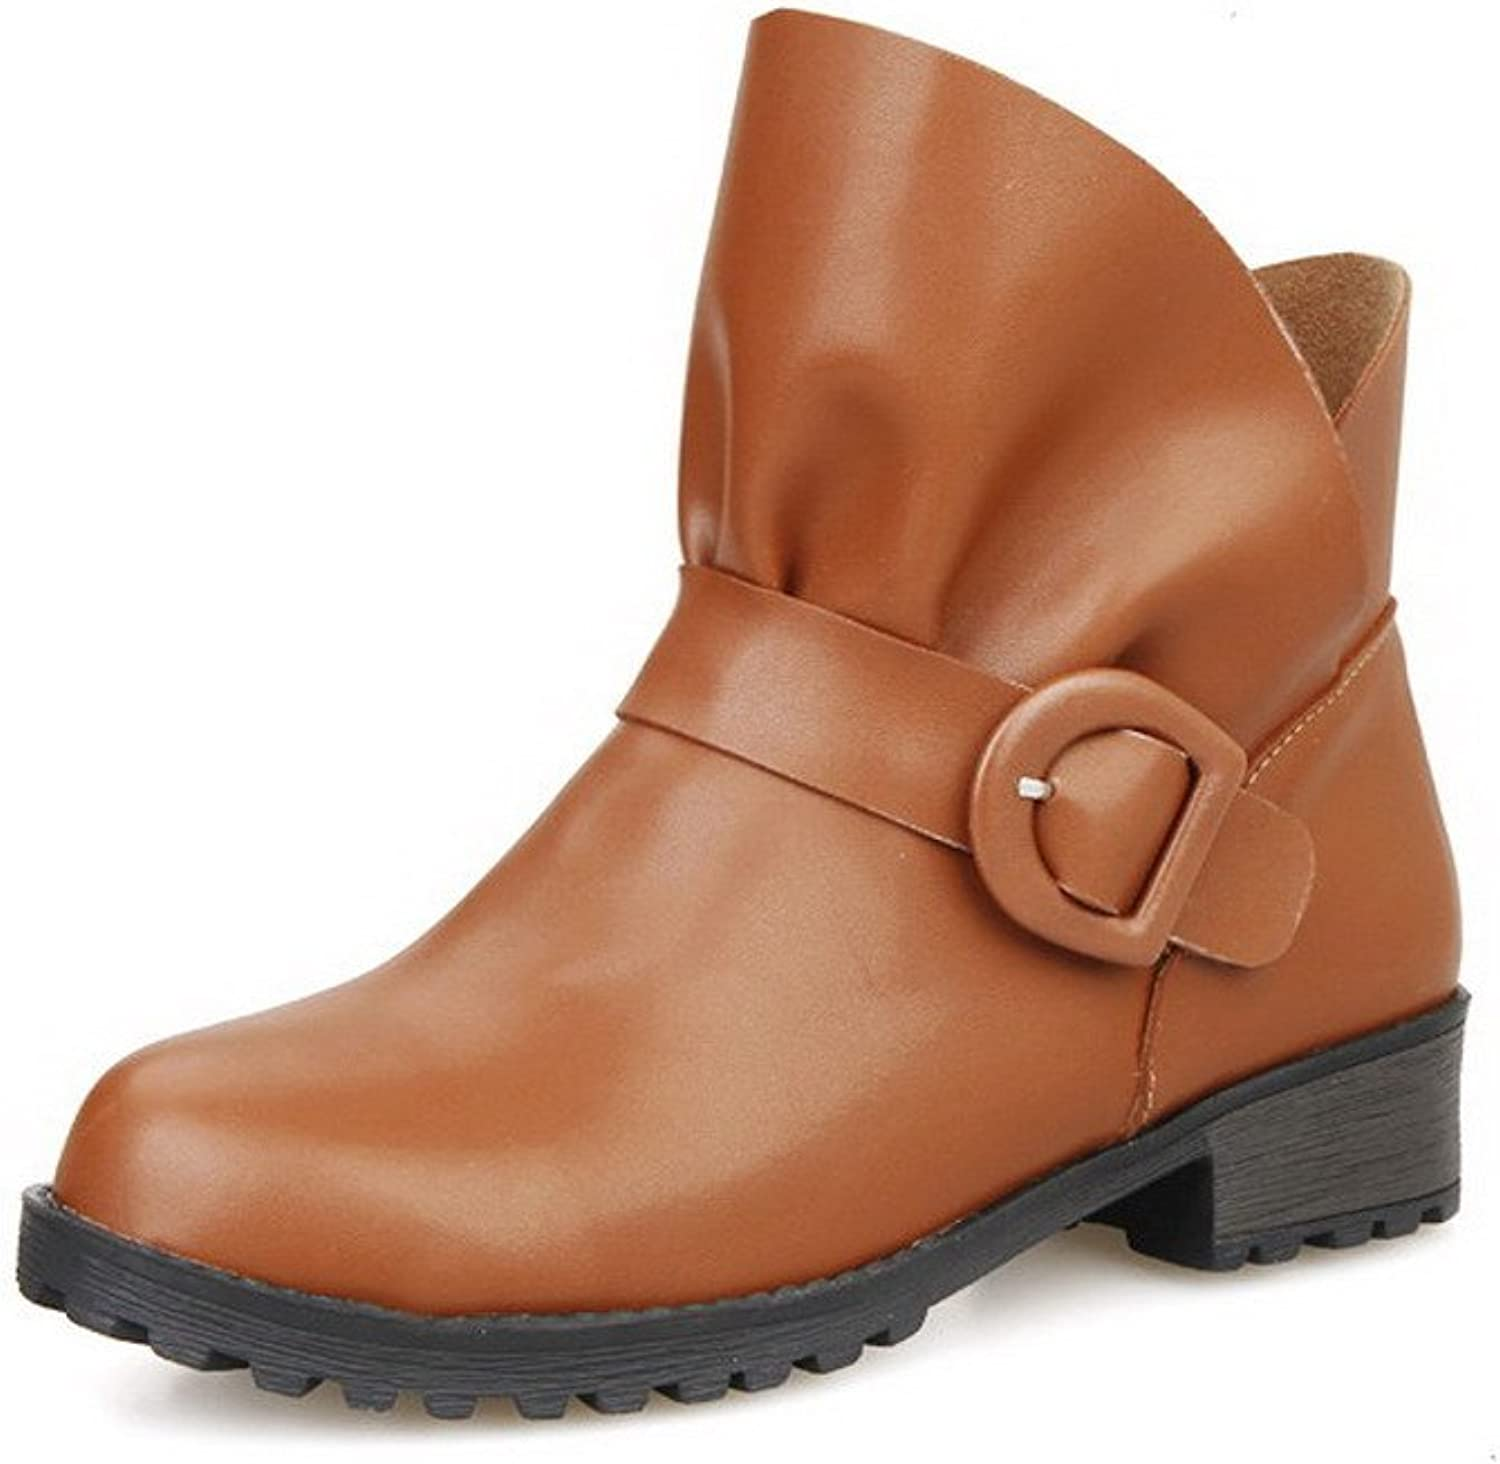 WeenFashion Women's Ankle-high Solid Pull-On Round Closed Toe Low-Heels Boots